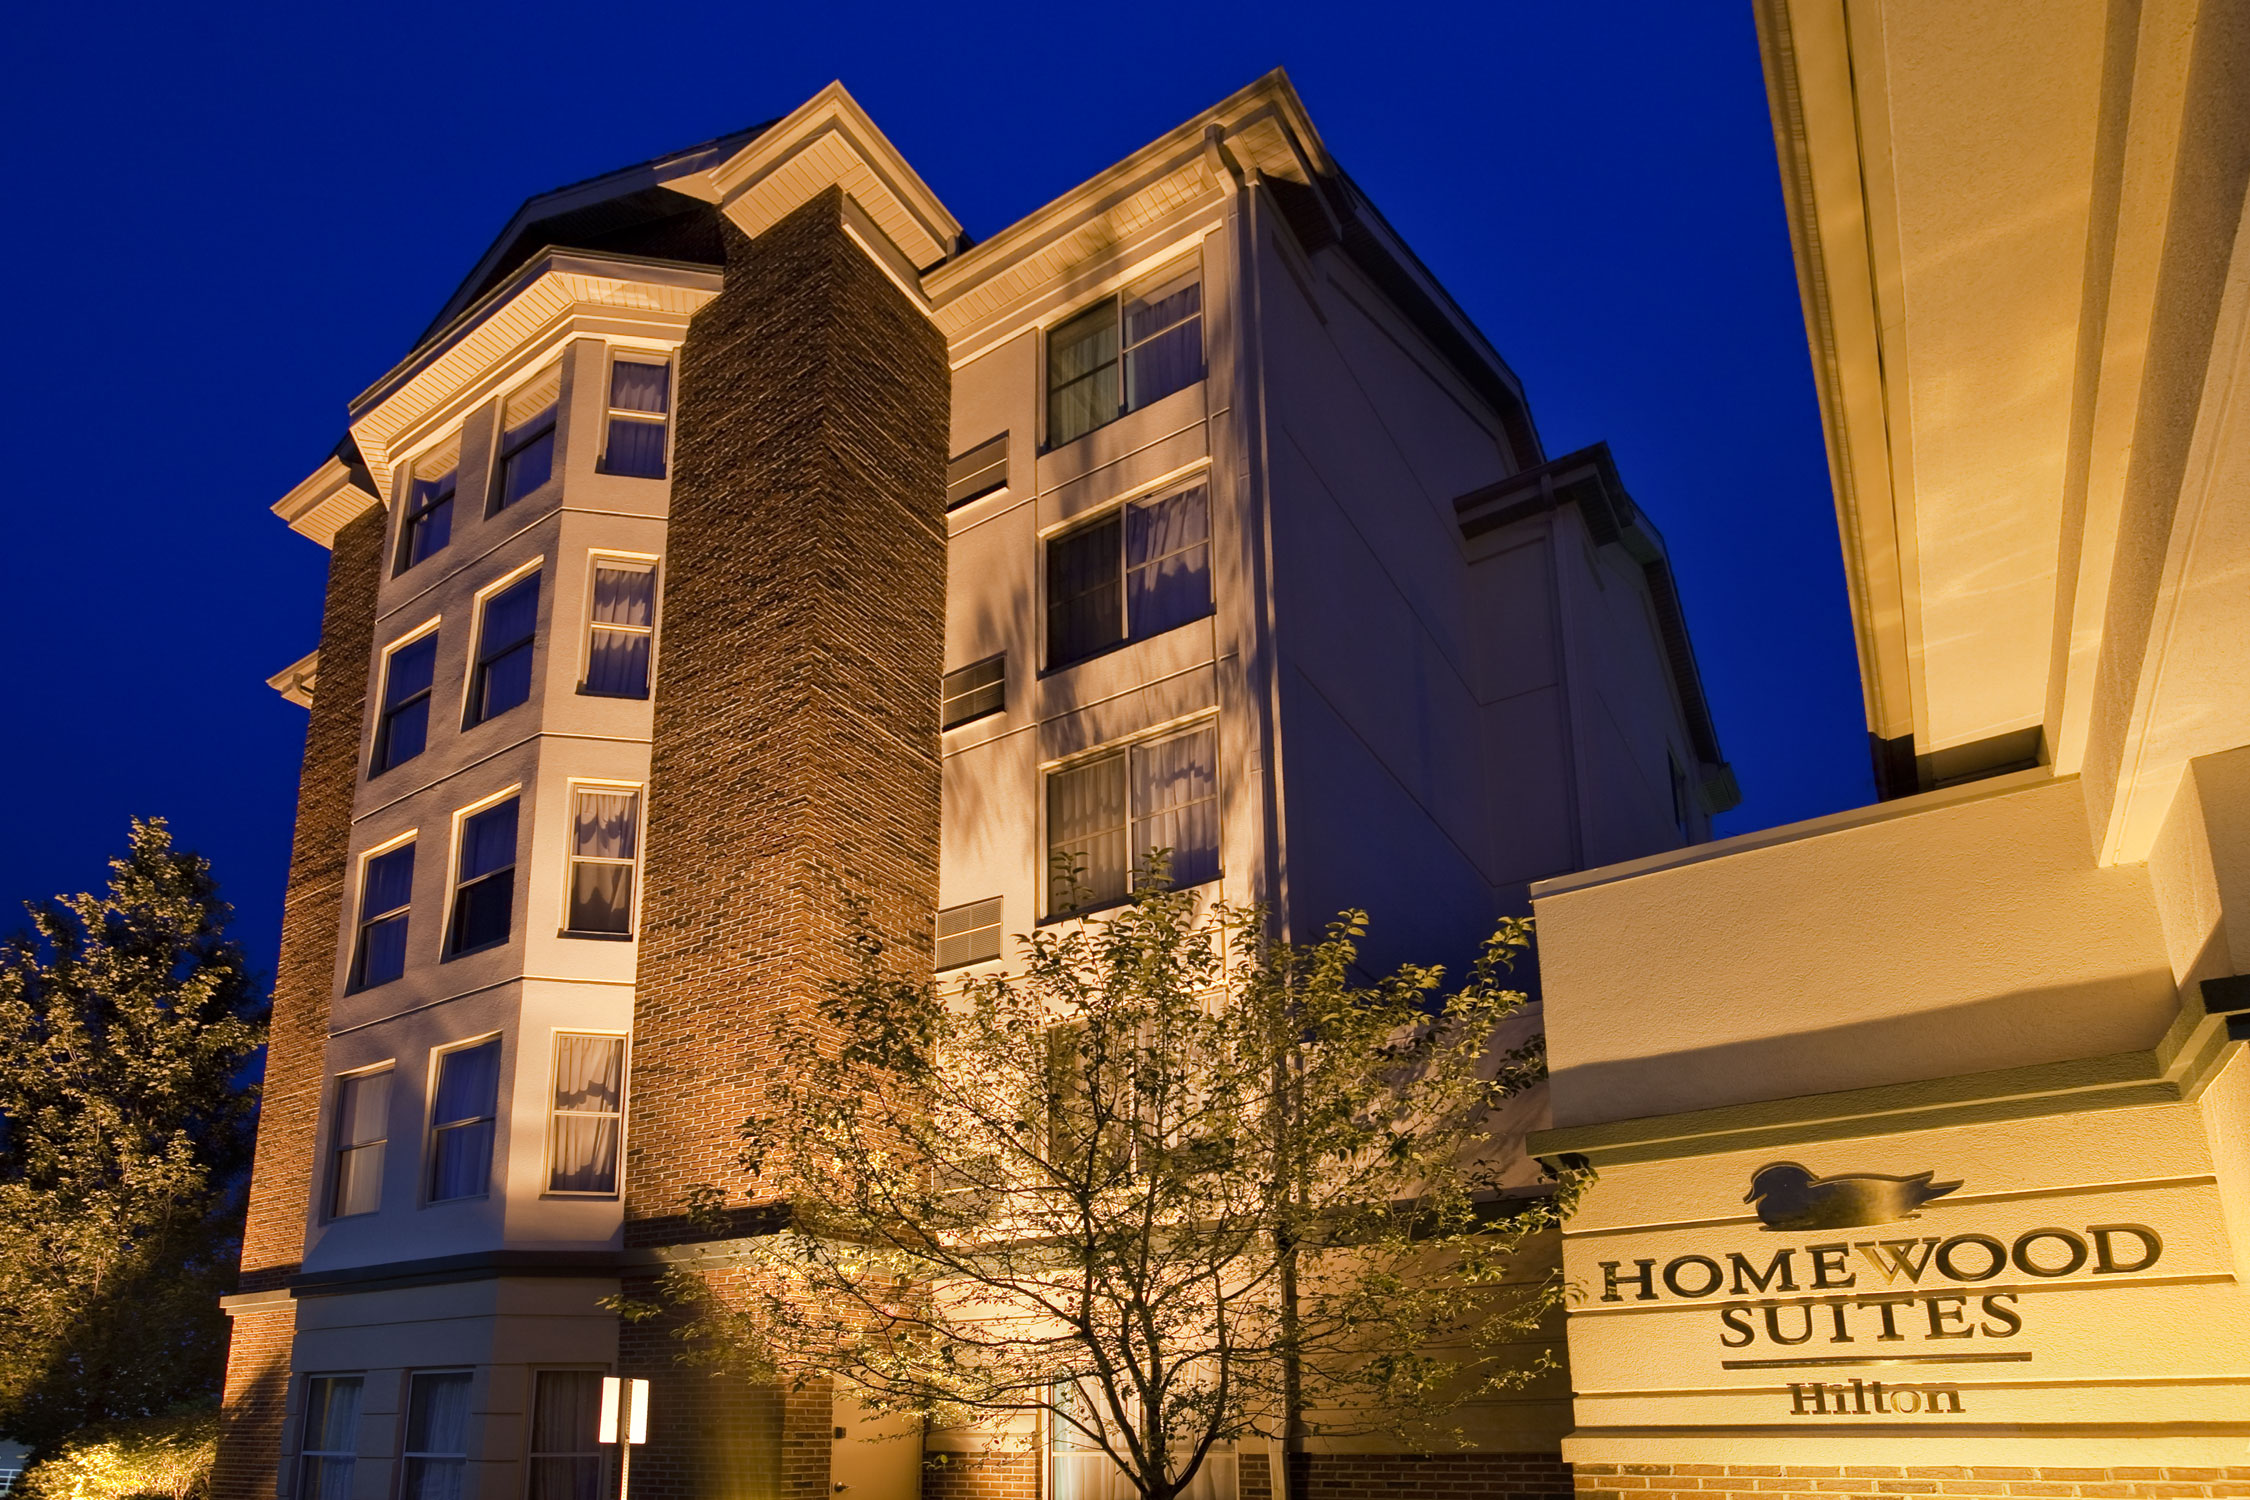 Homewood Suites by Hilton Dayton-South